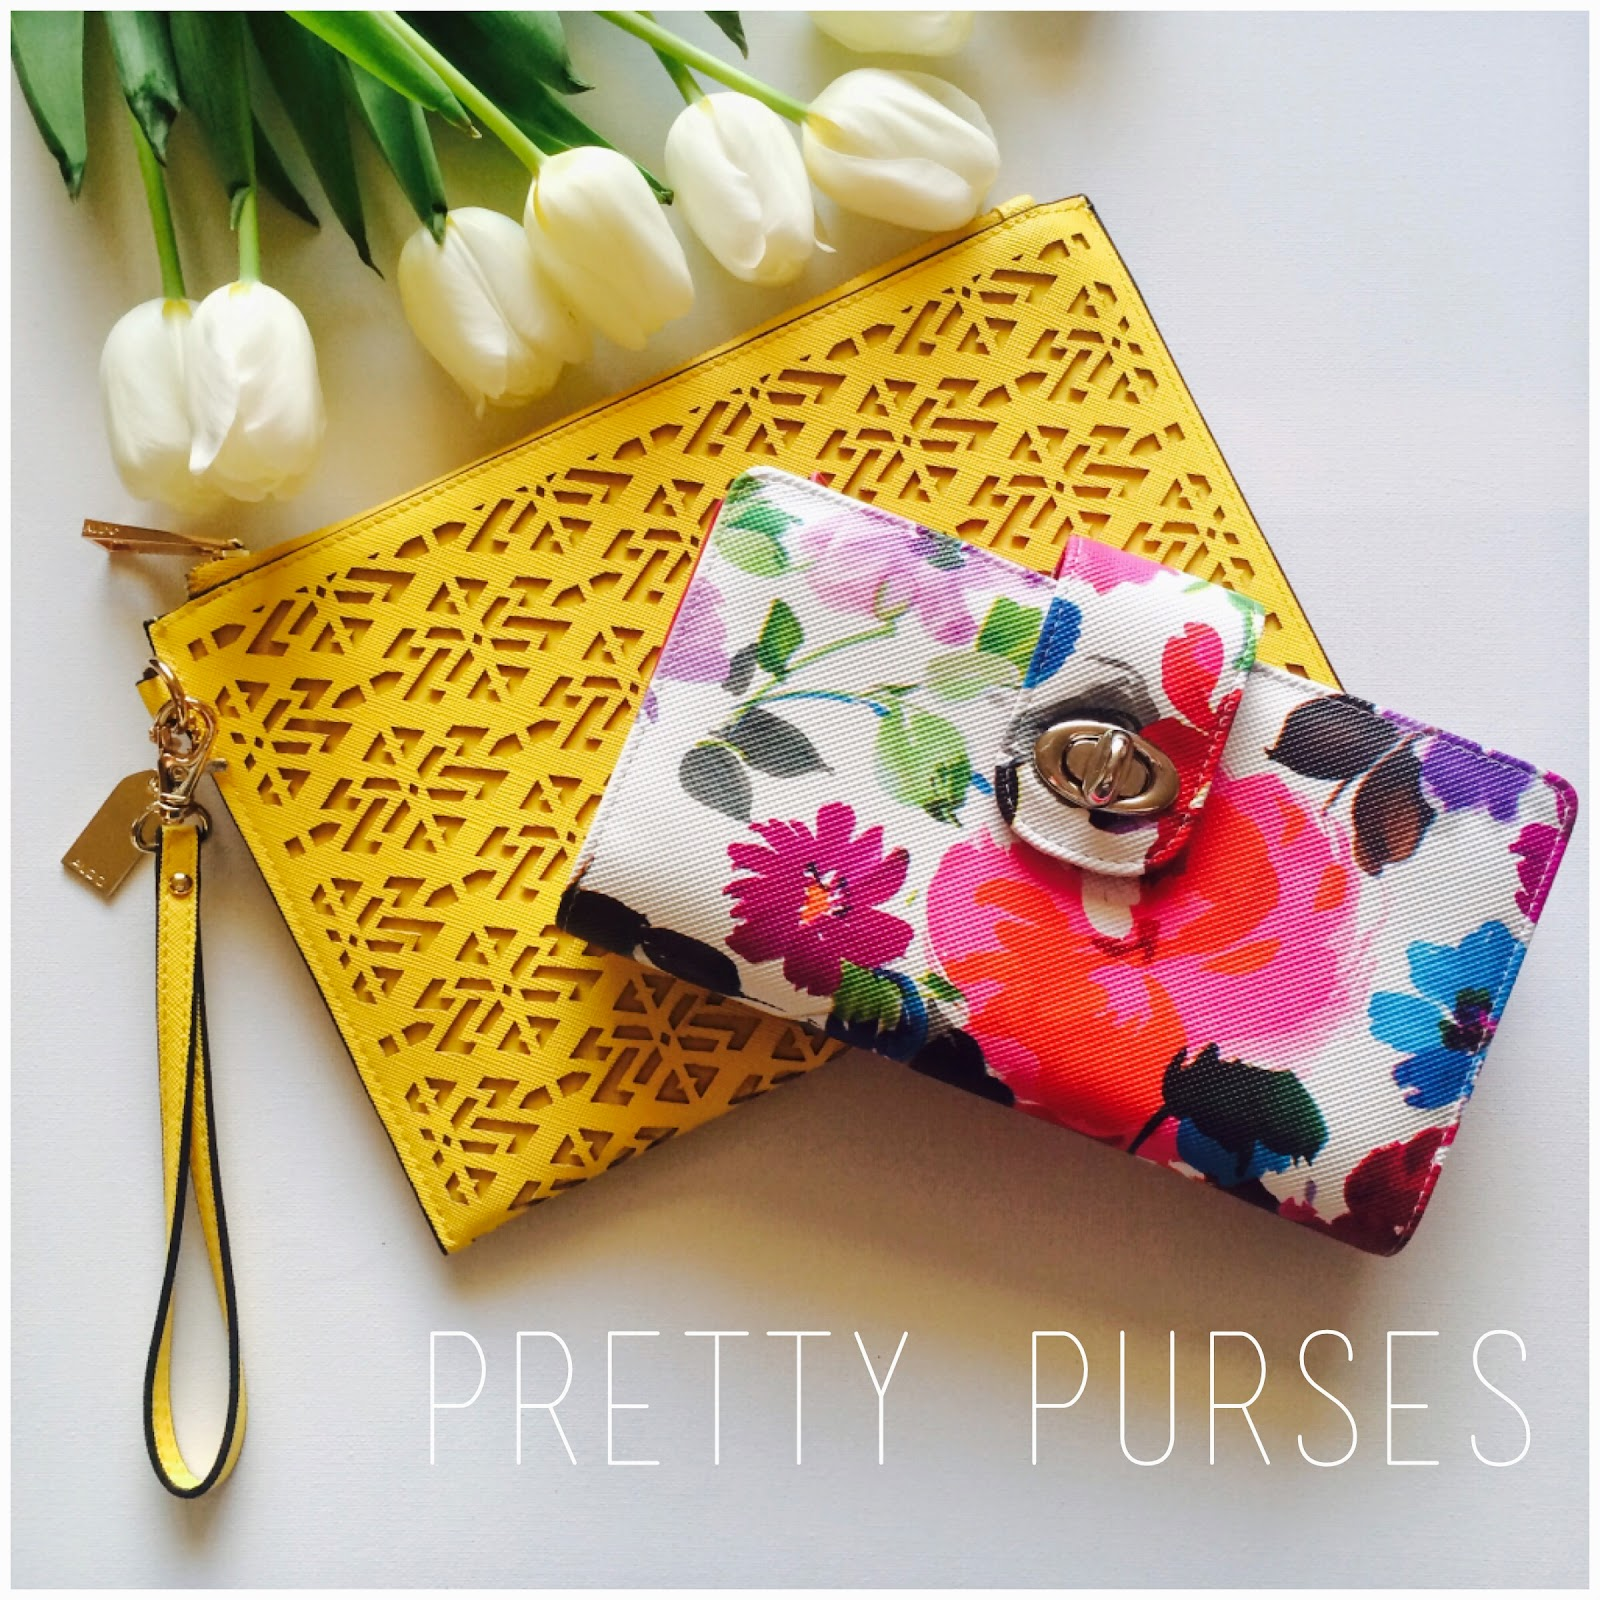 livingandbeauty.com pretty purses